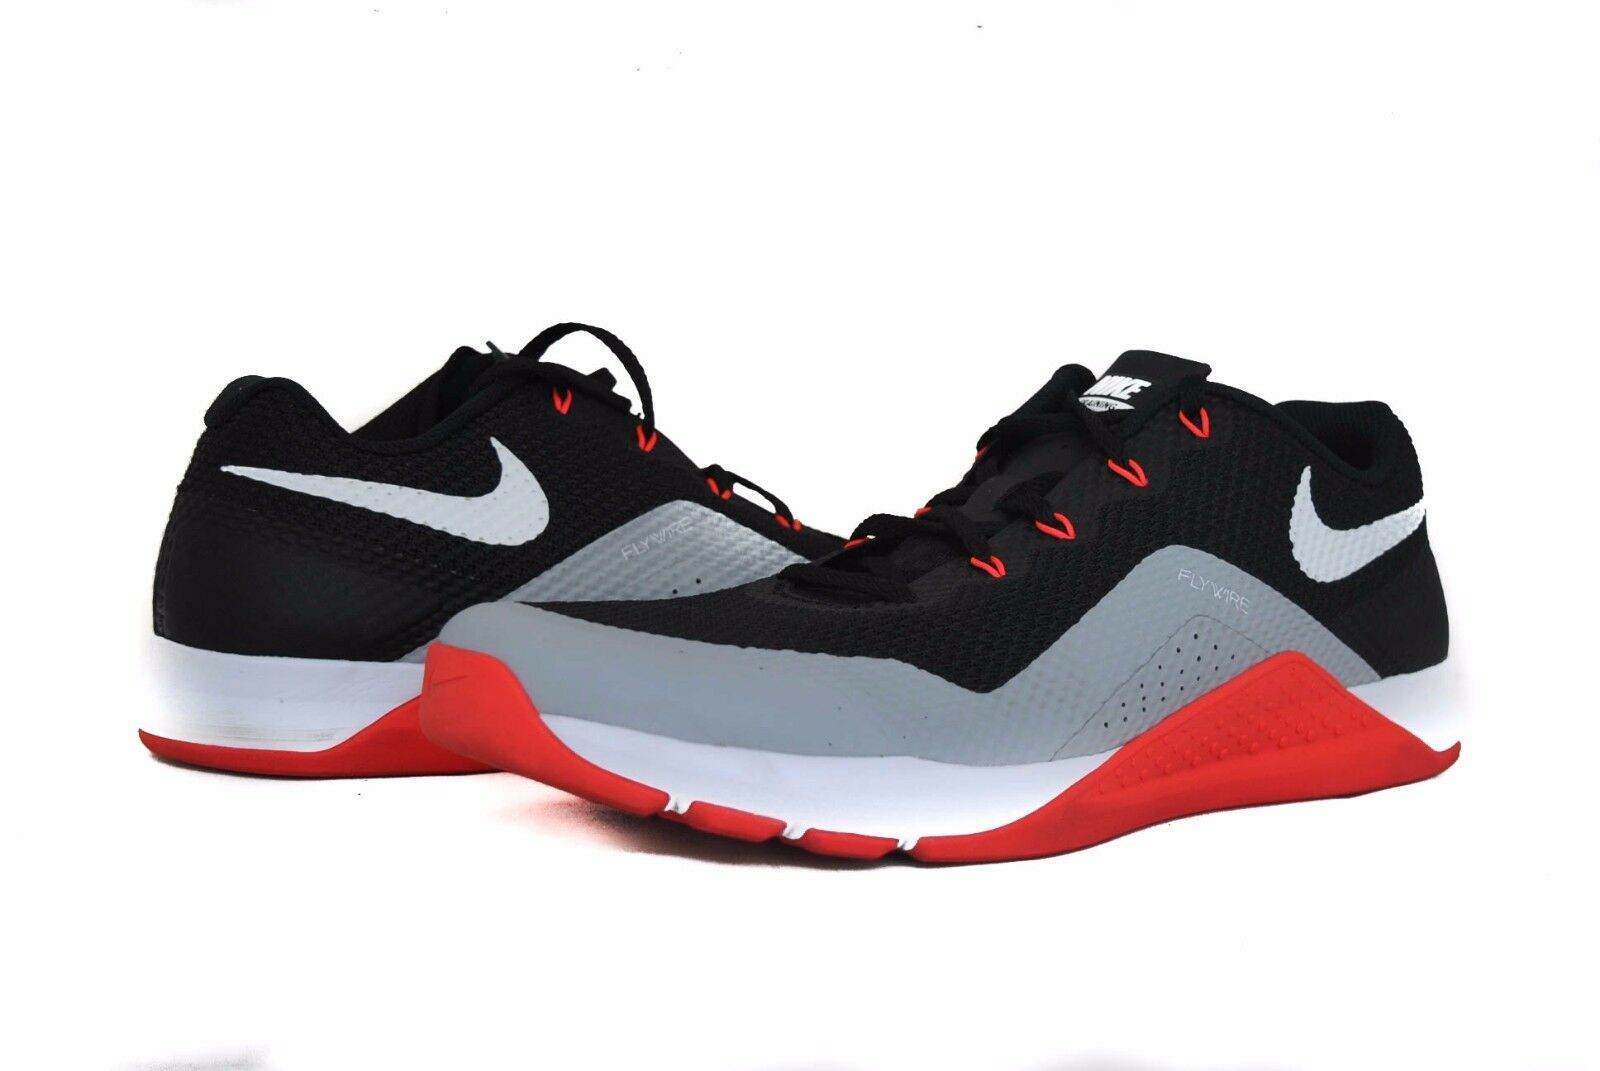 202989195d Nike Men's Repper DSX Cross Training shoes in Black White Grey Crimson Sz  12 USED